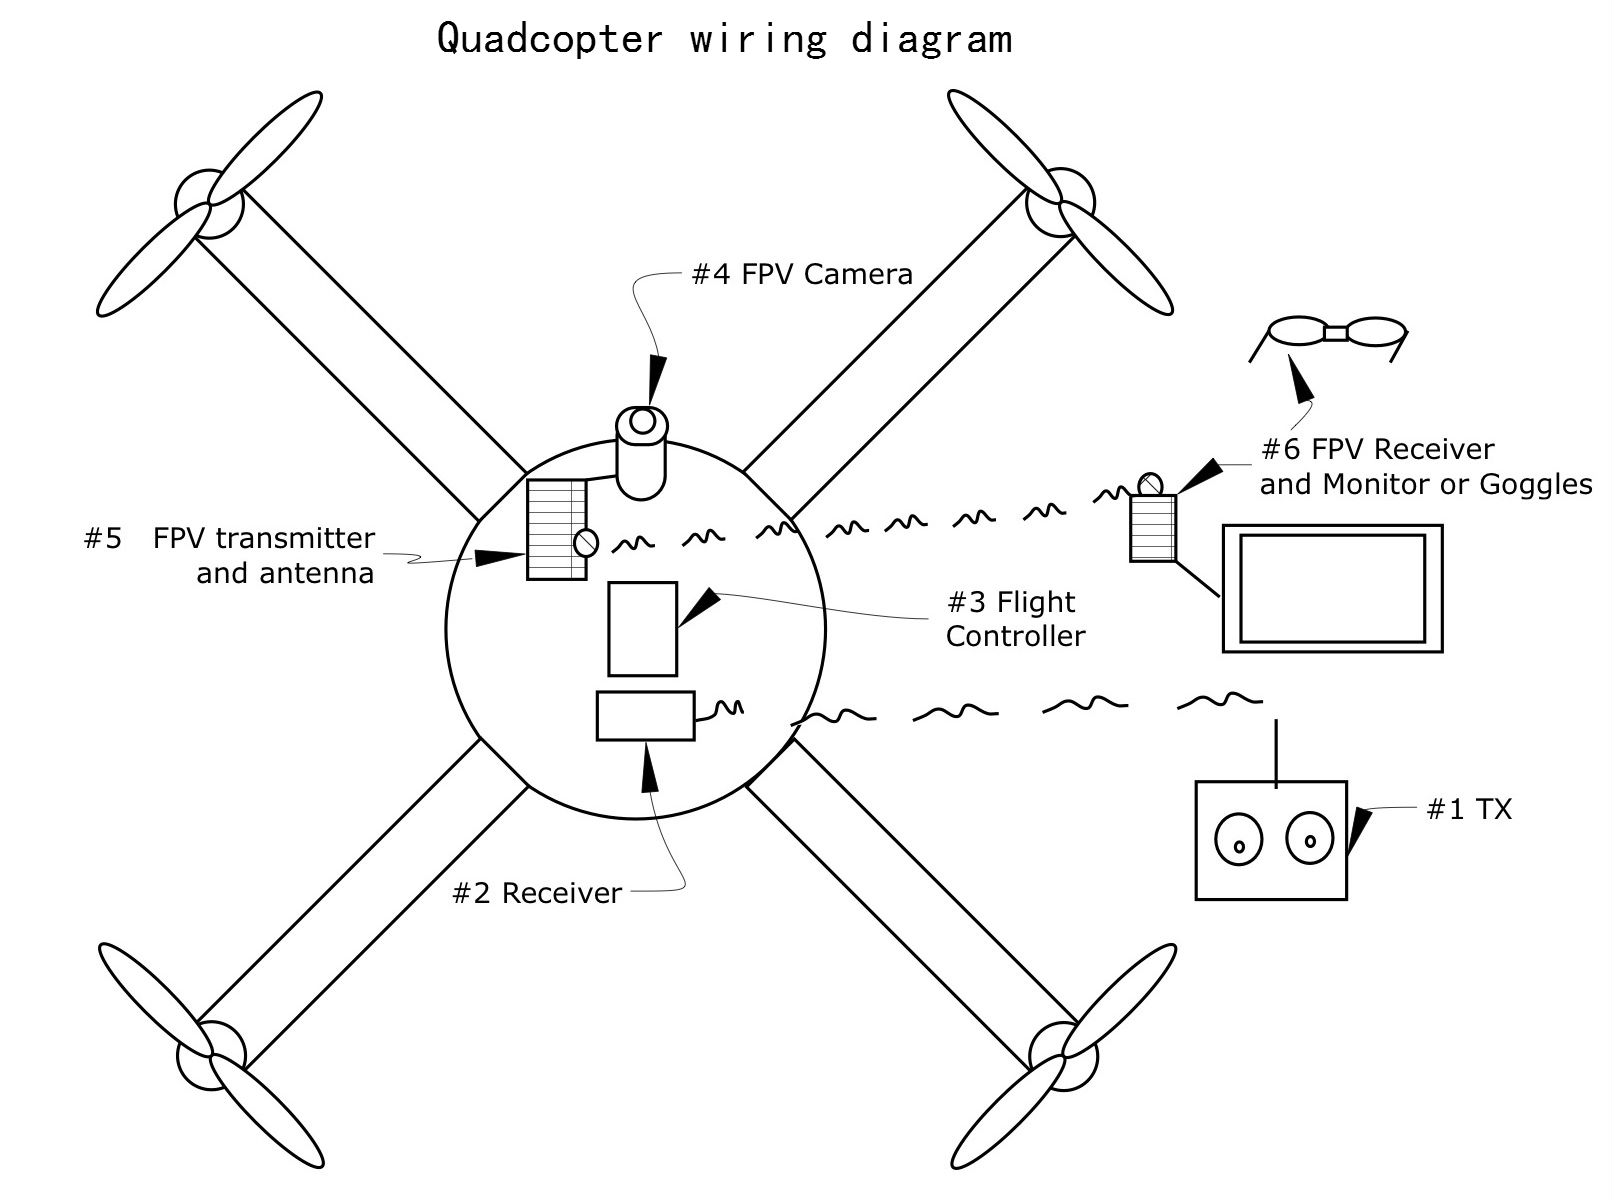 wiring diagram for quadcopter